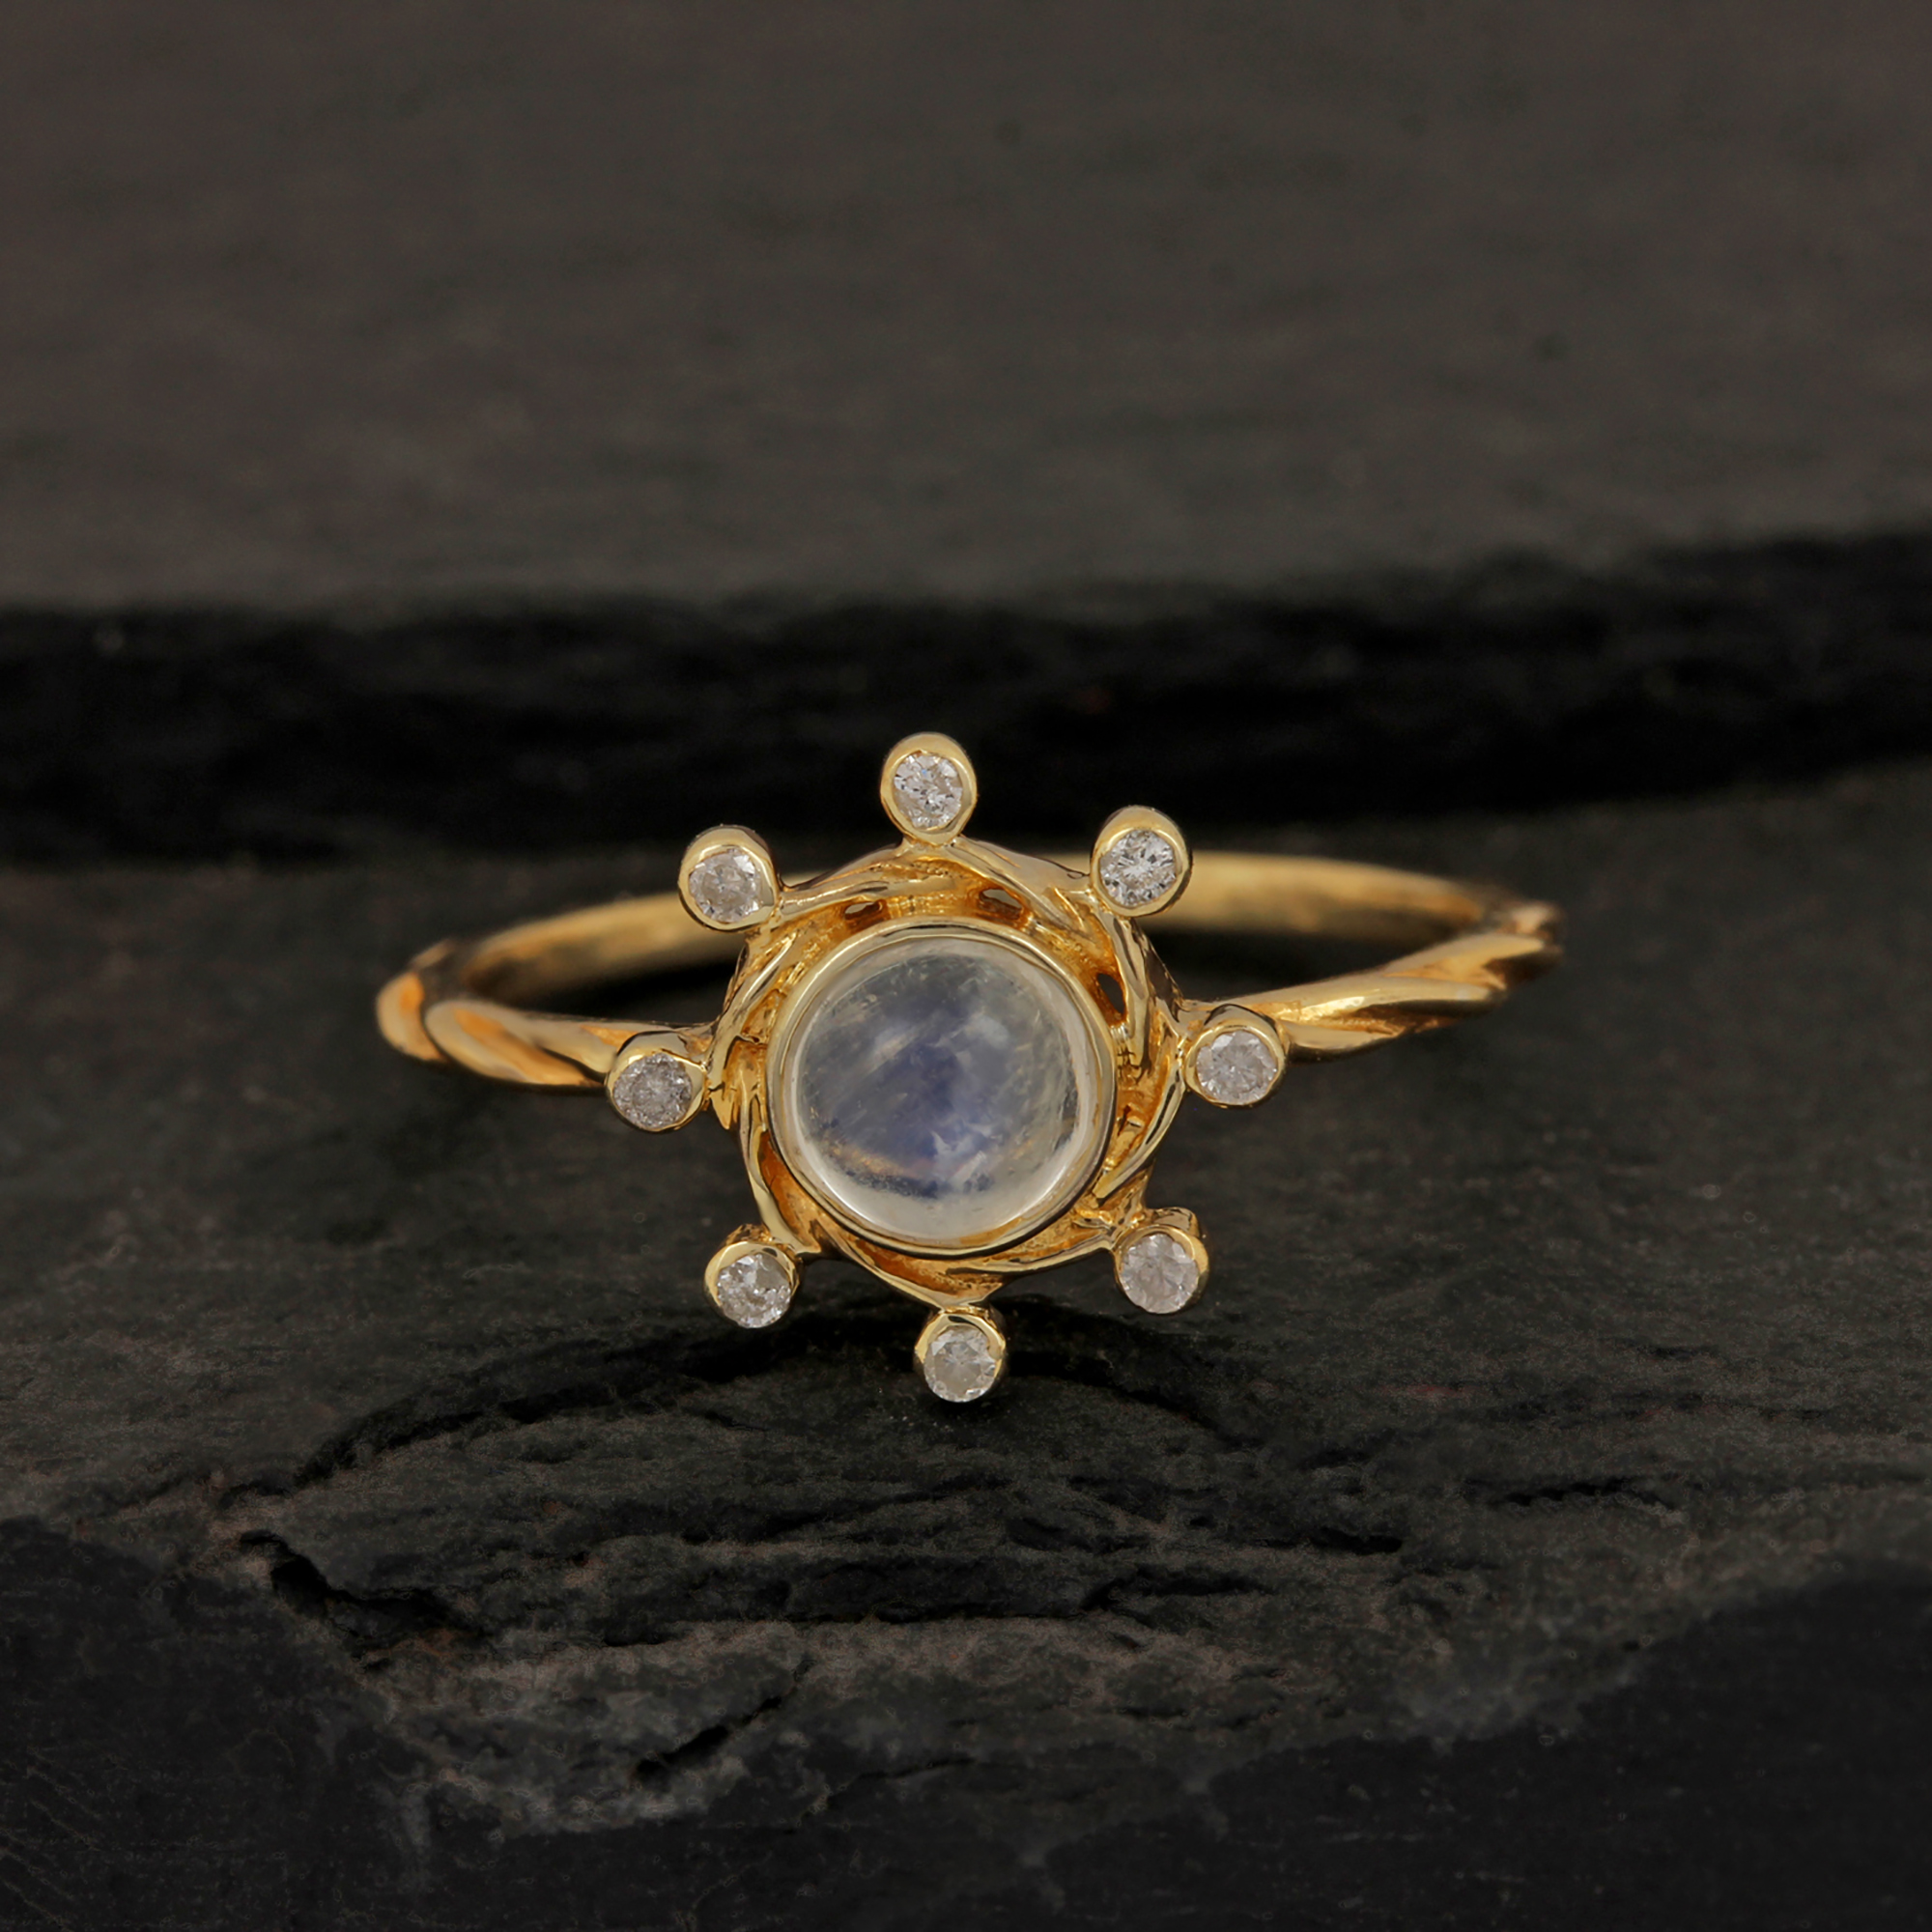 Solitaire Moonstone Ring 14k Solid Gold Diamond Fine Jewelry